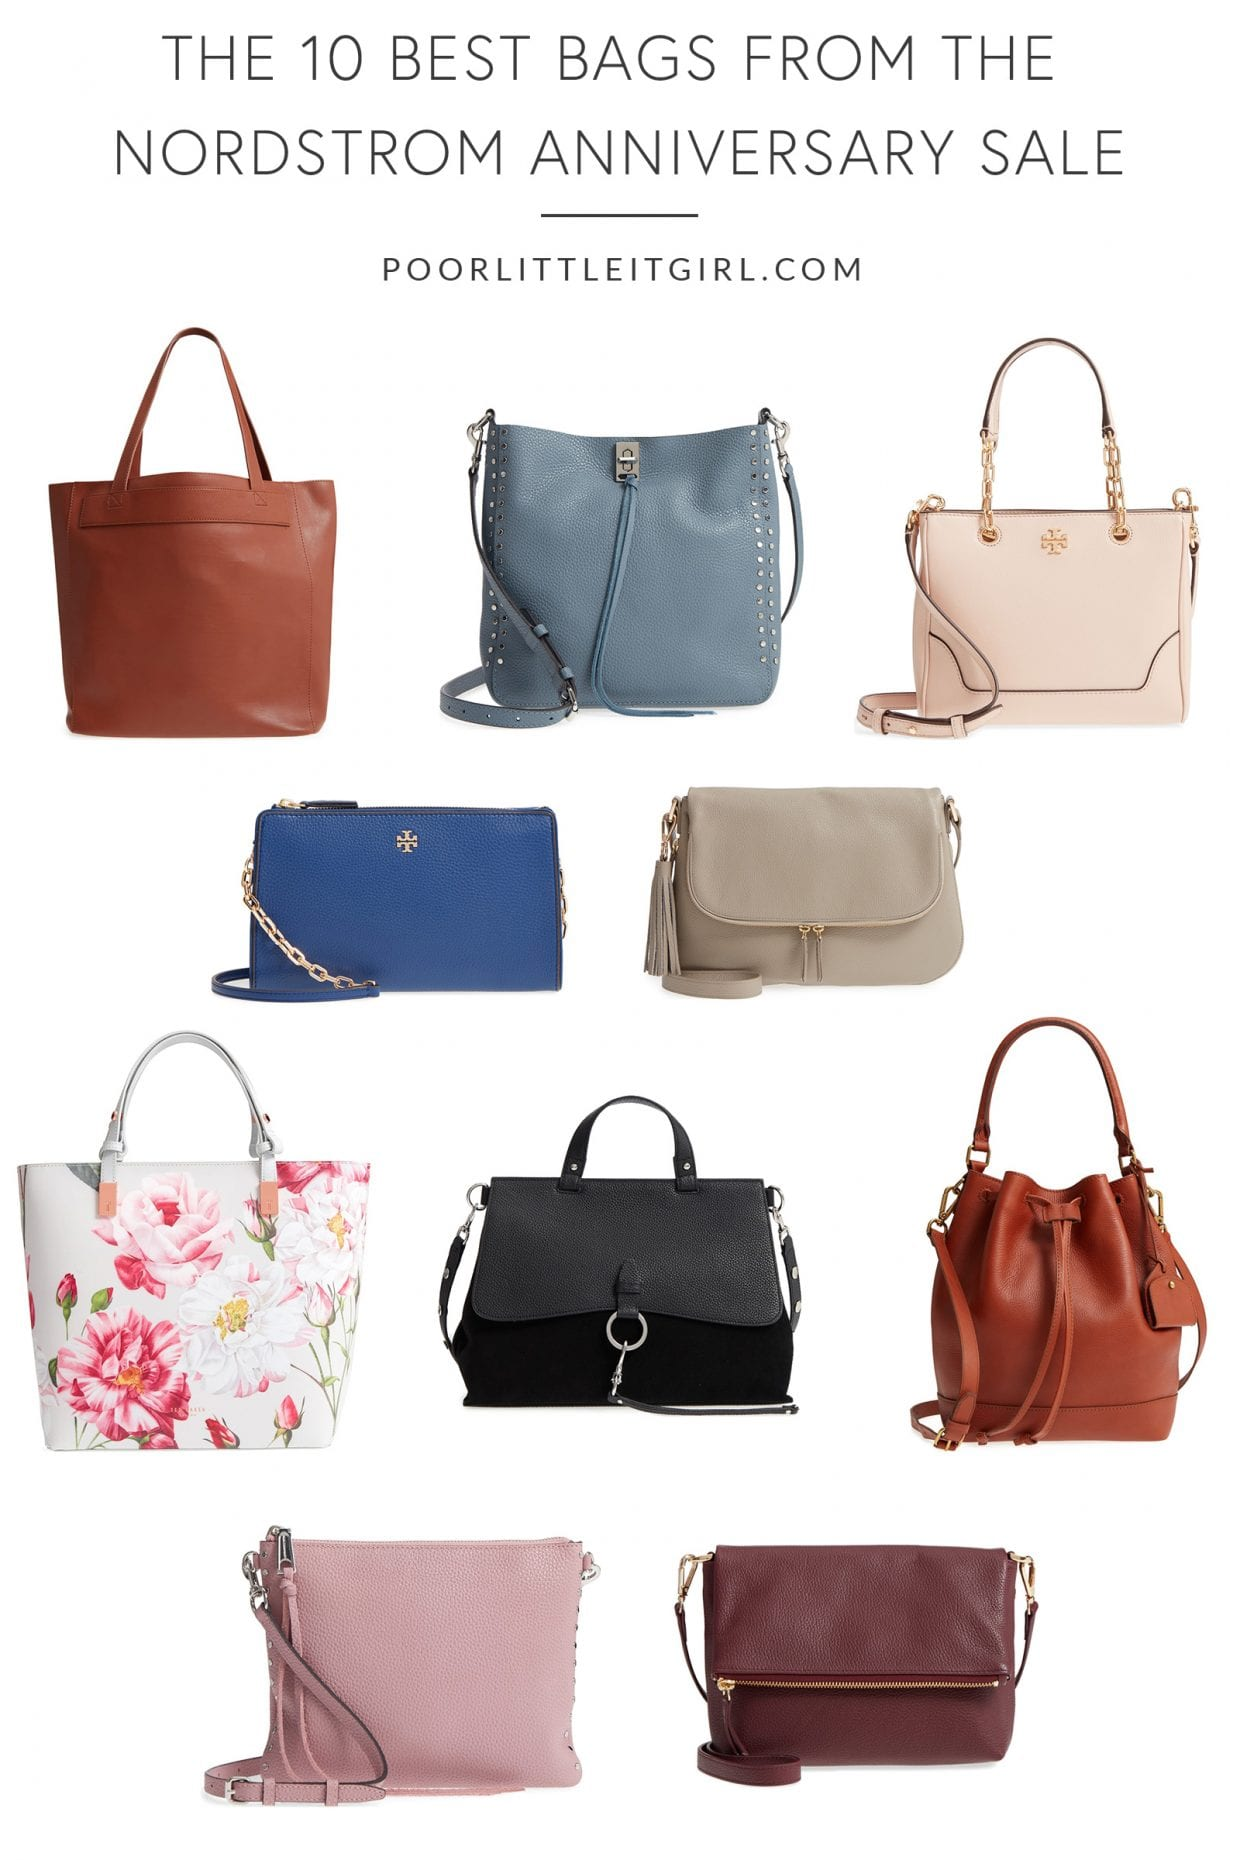 ca70da4c6a46 Top Ten Bags From The Nordstrom Anniversary Sale - Poor Little It Girl